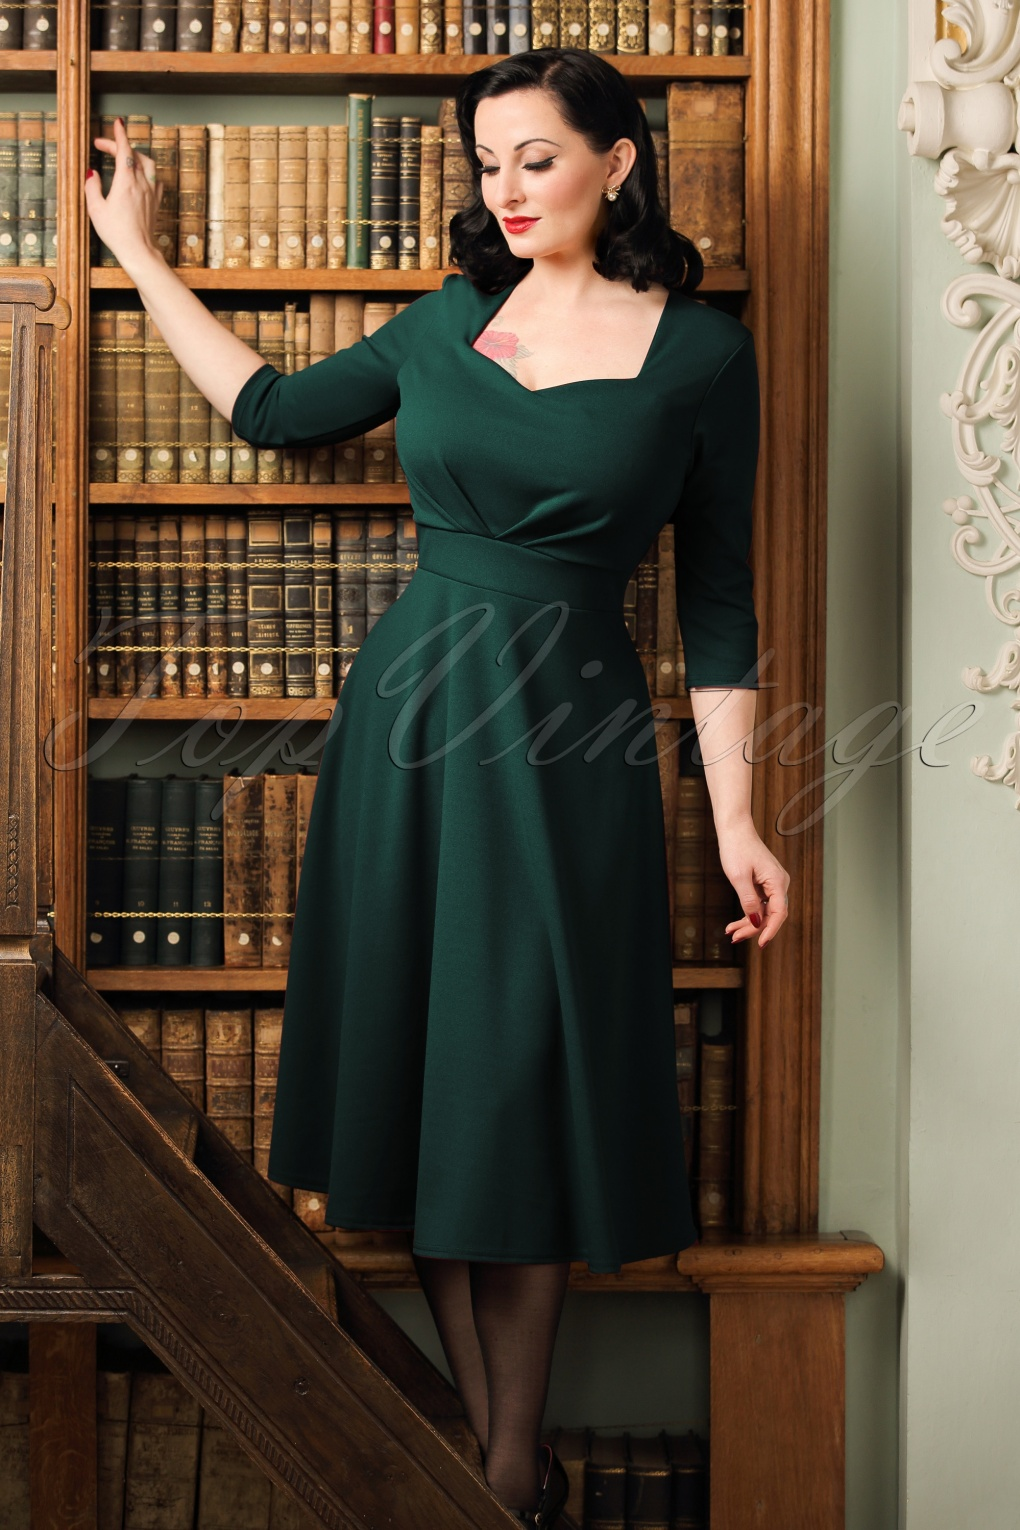 1940s Evening, Prom, Party, Cocktail Dresses & Ball Gowns 50s Ruby Swing Dress in Forest Green £49.23 AT vintagedancer.com